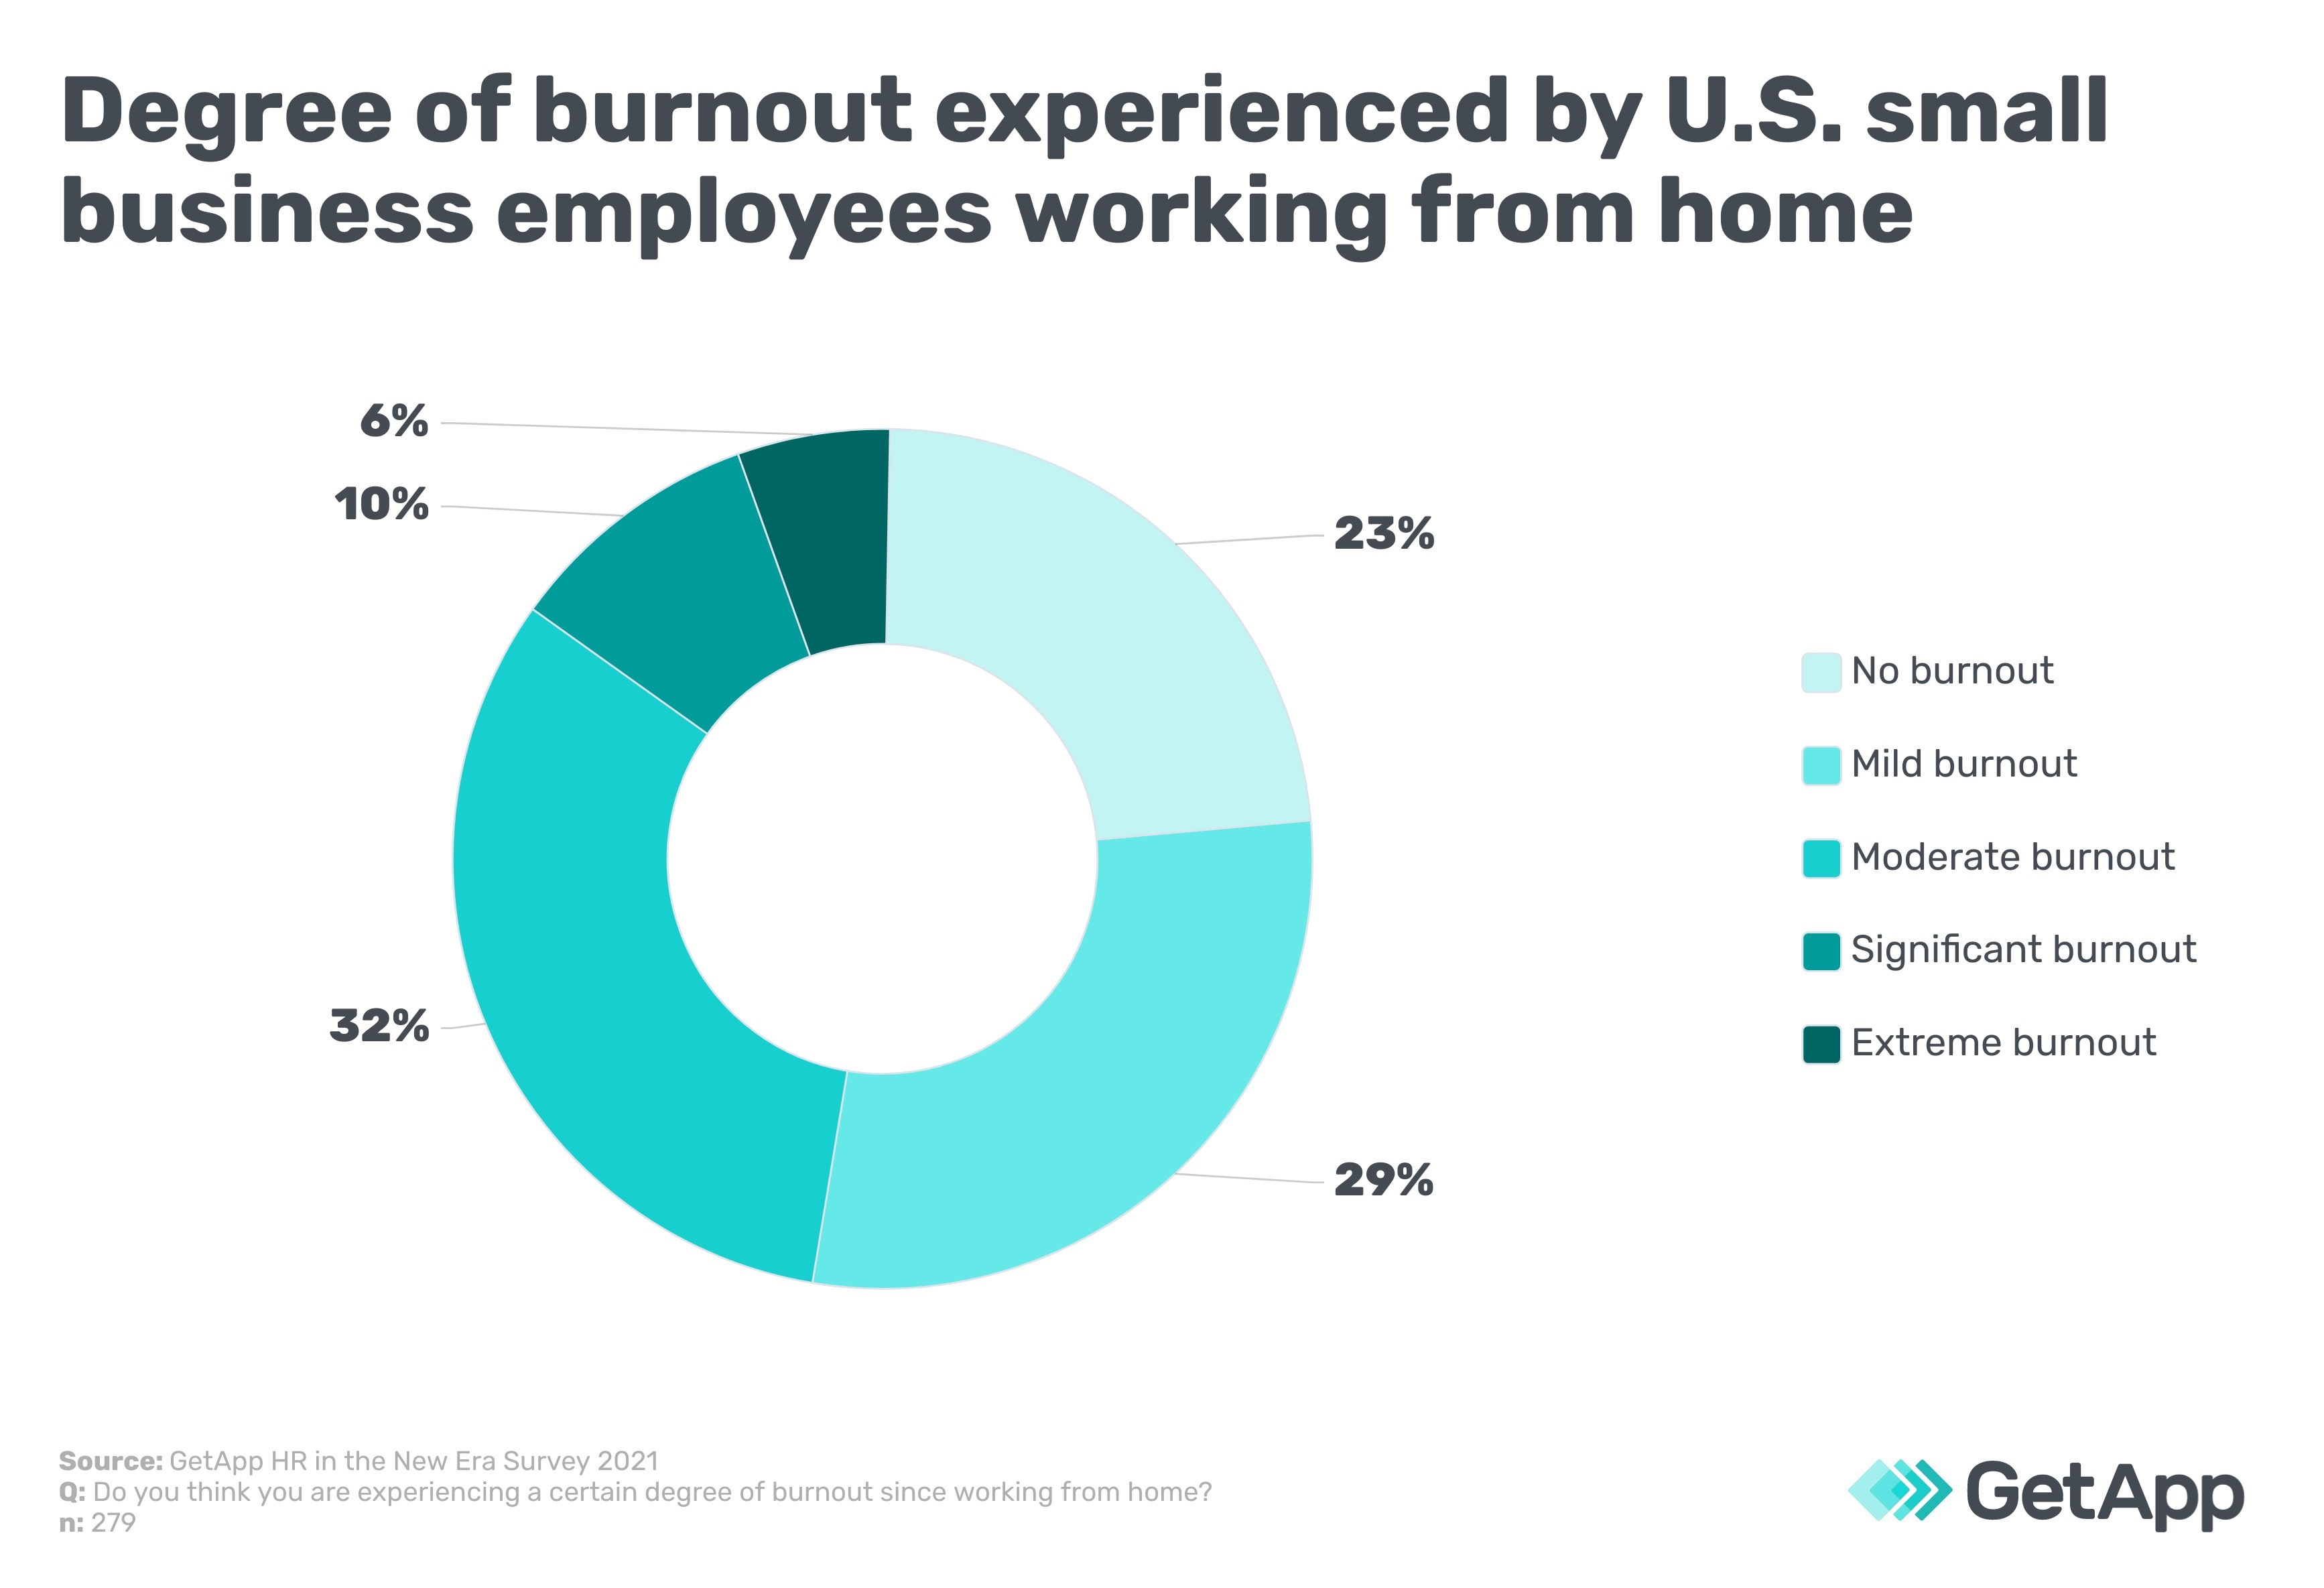 Degree of burnout experience by U.S. small business employees working from home